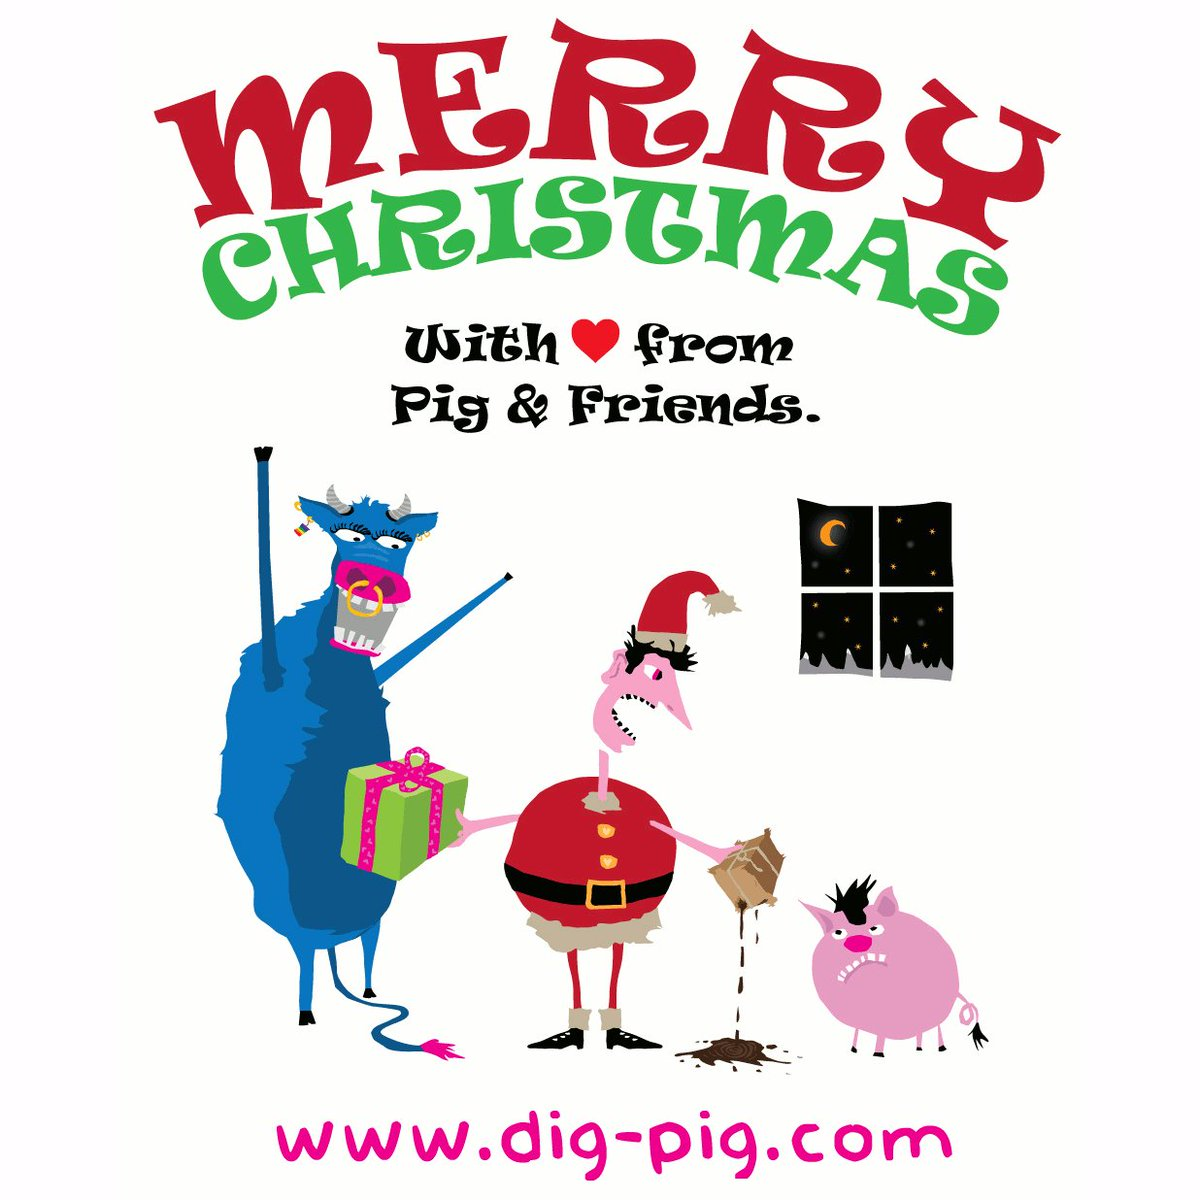 Dig Pig On Twitter Happy And Peaceful Holidays From Pig And Friends With From Berlin Pretty sure my boards speak for themselves. twitter